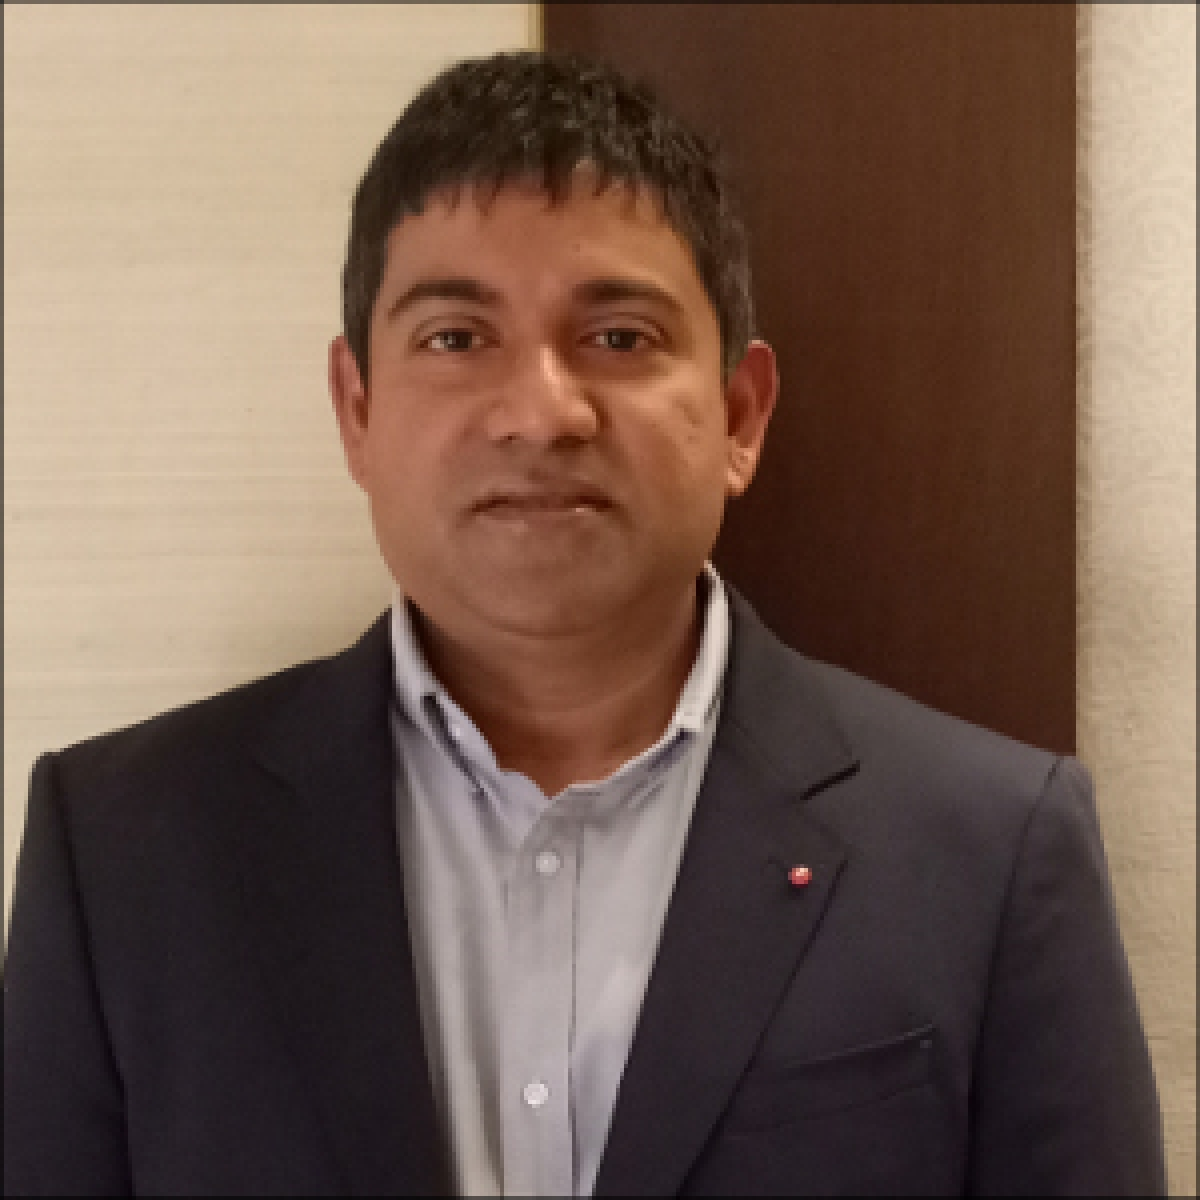 Starcom India appoints Rajiv Gopinath as Chief Client Officer